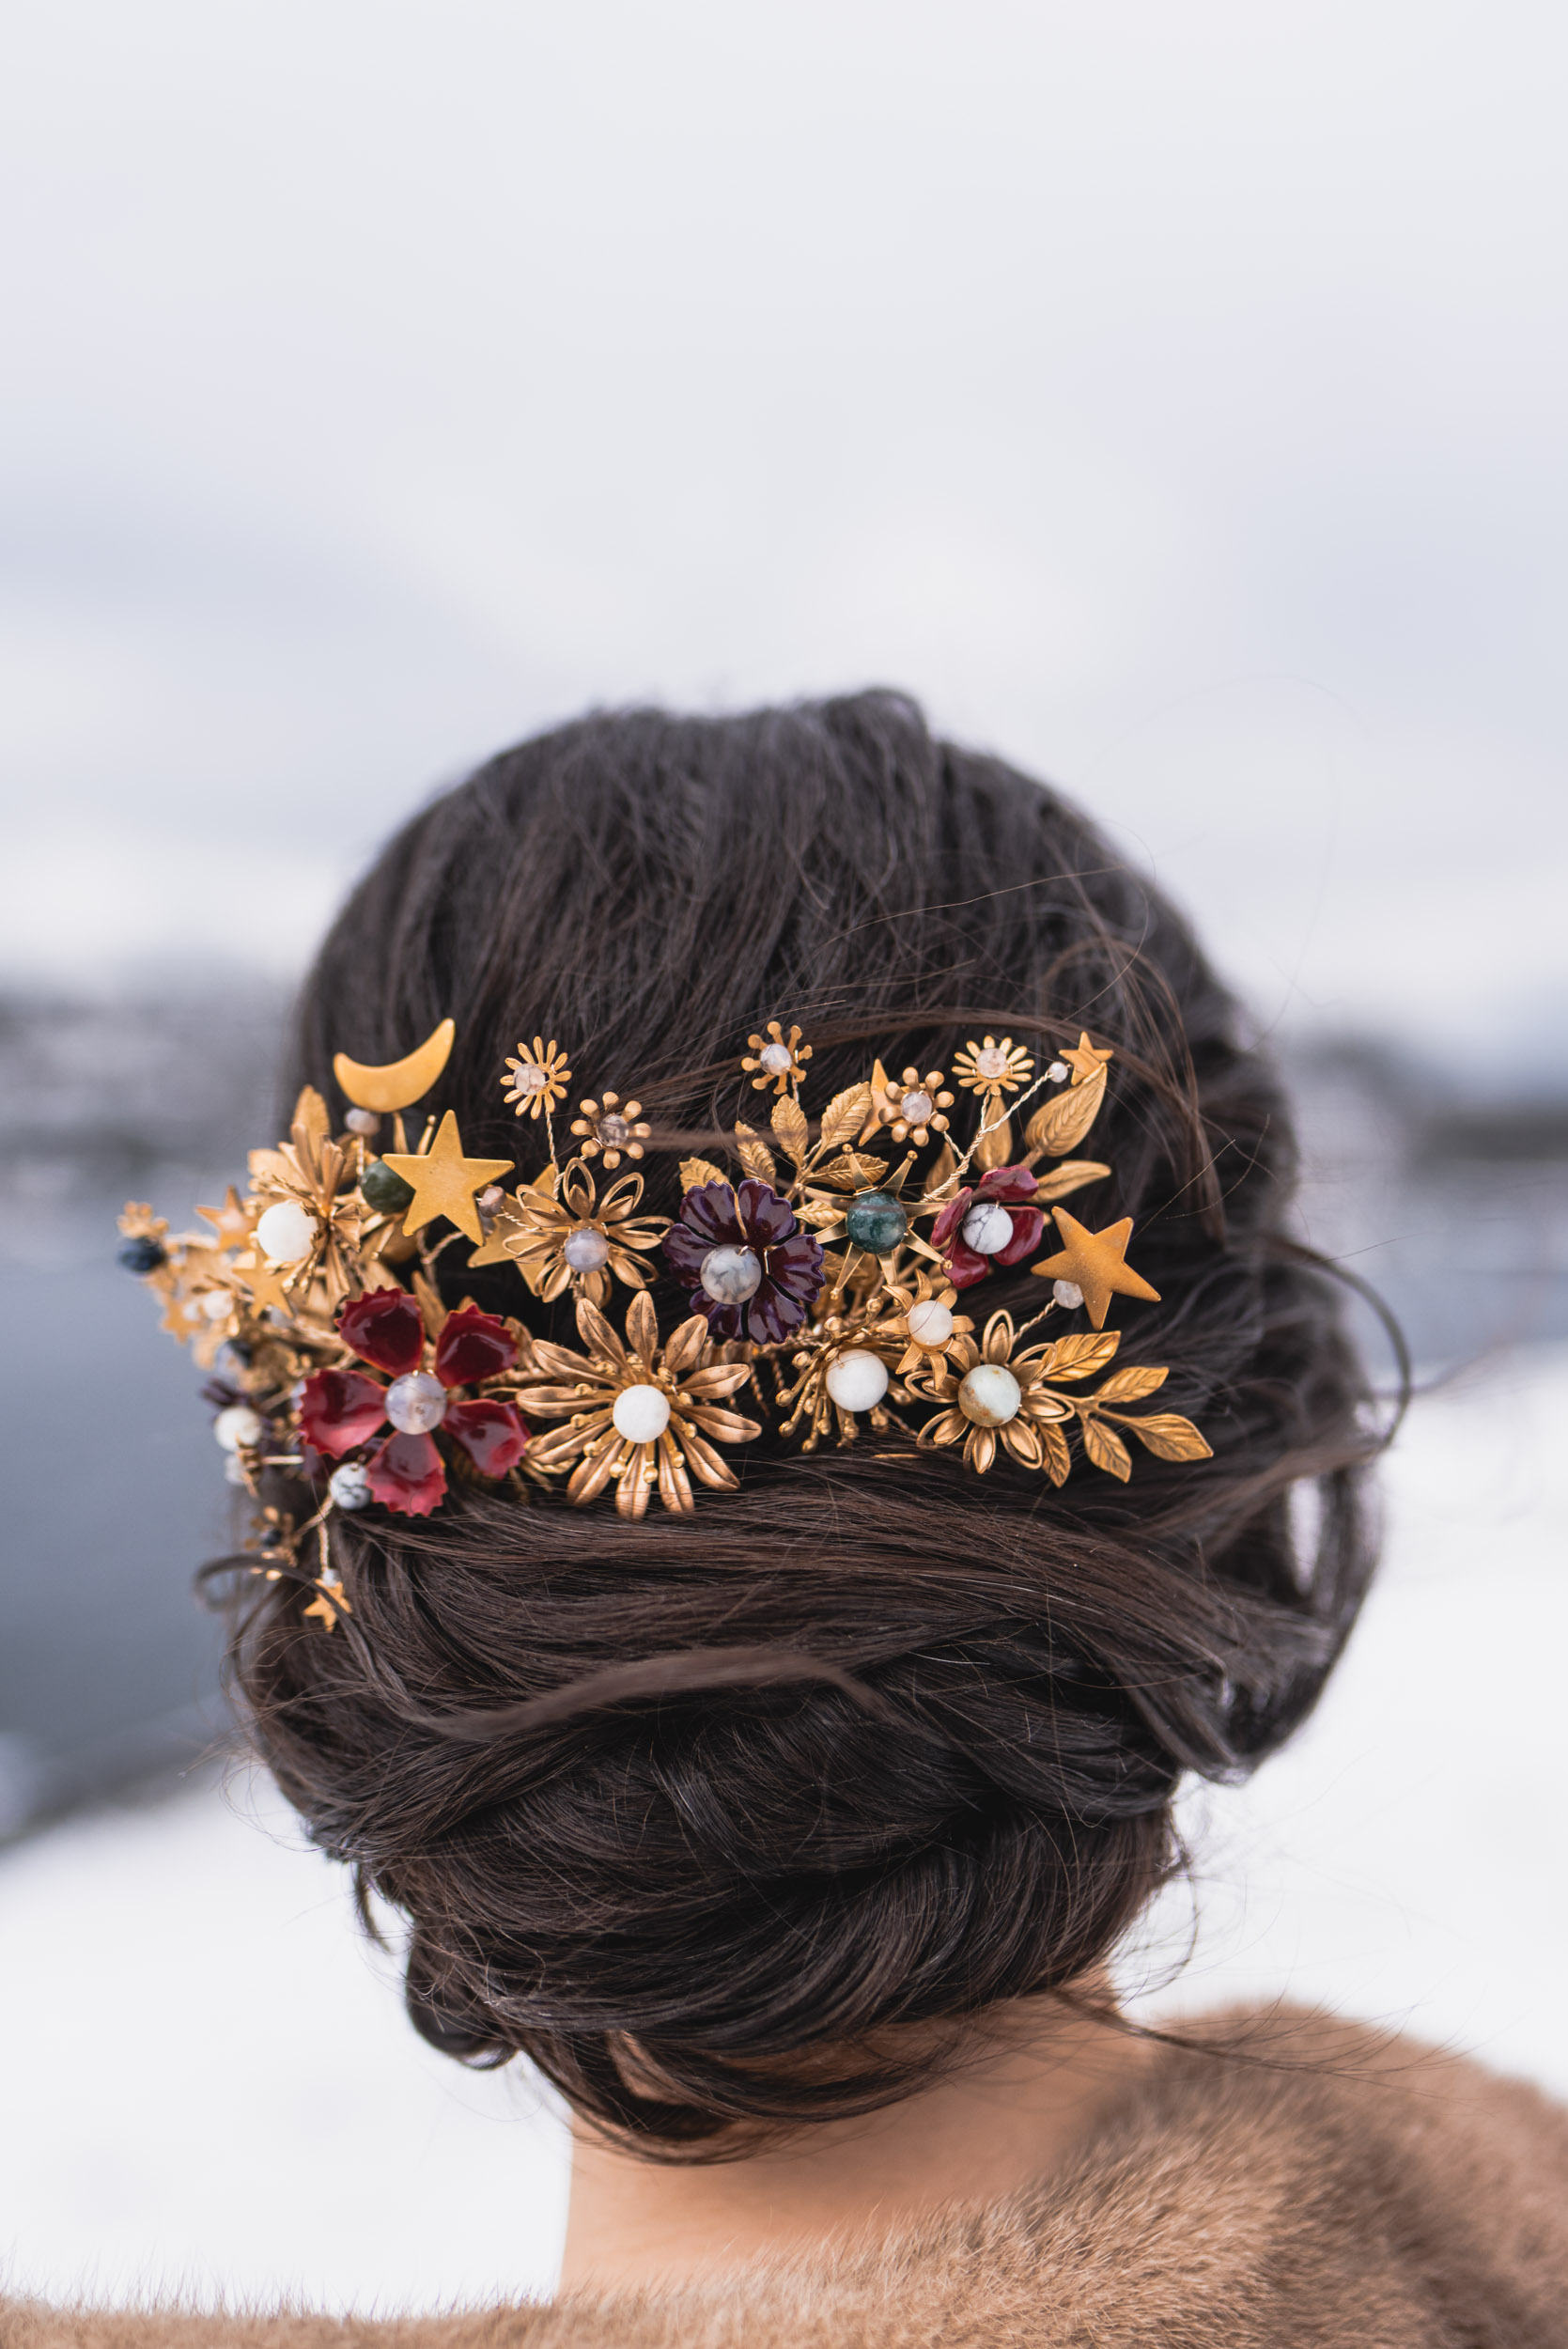 Bride hair accessory detail